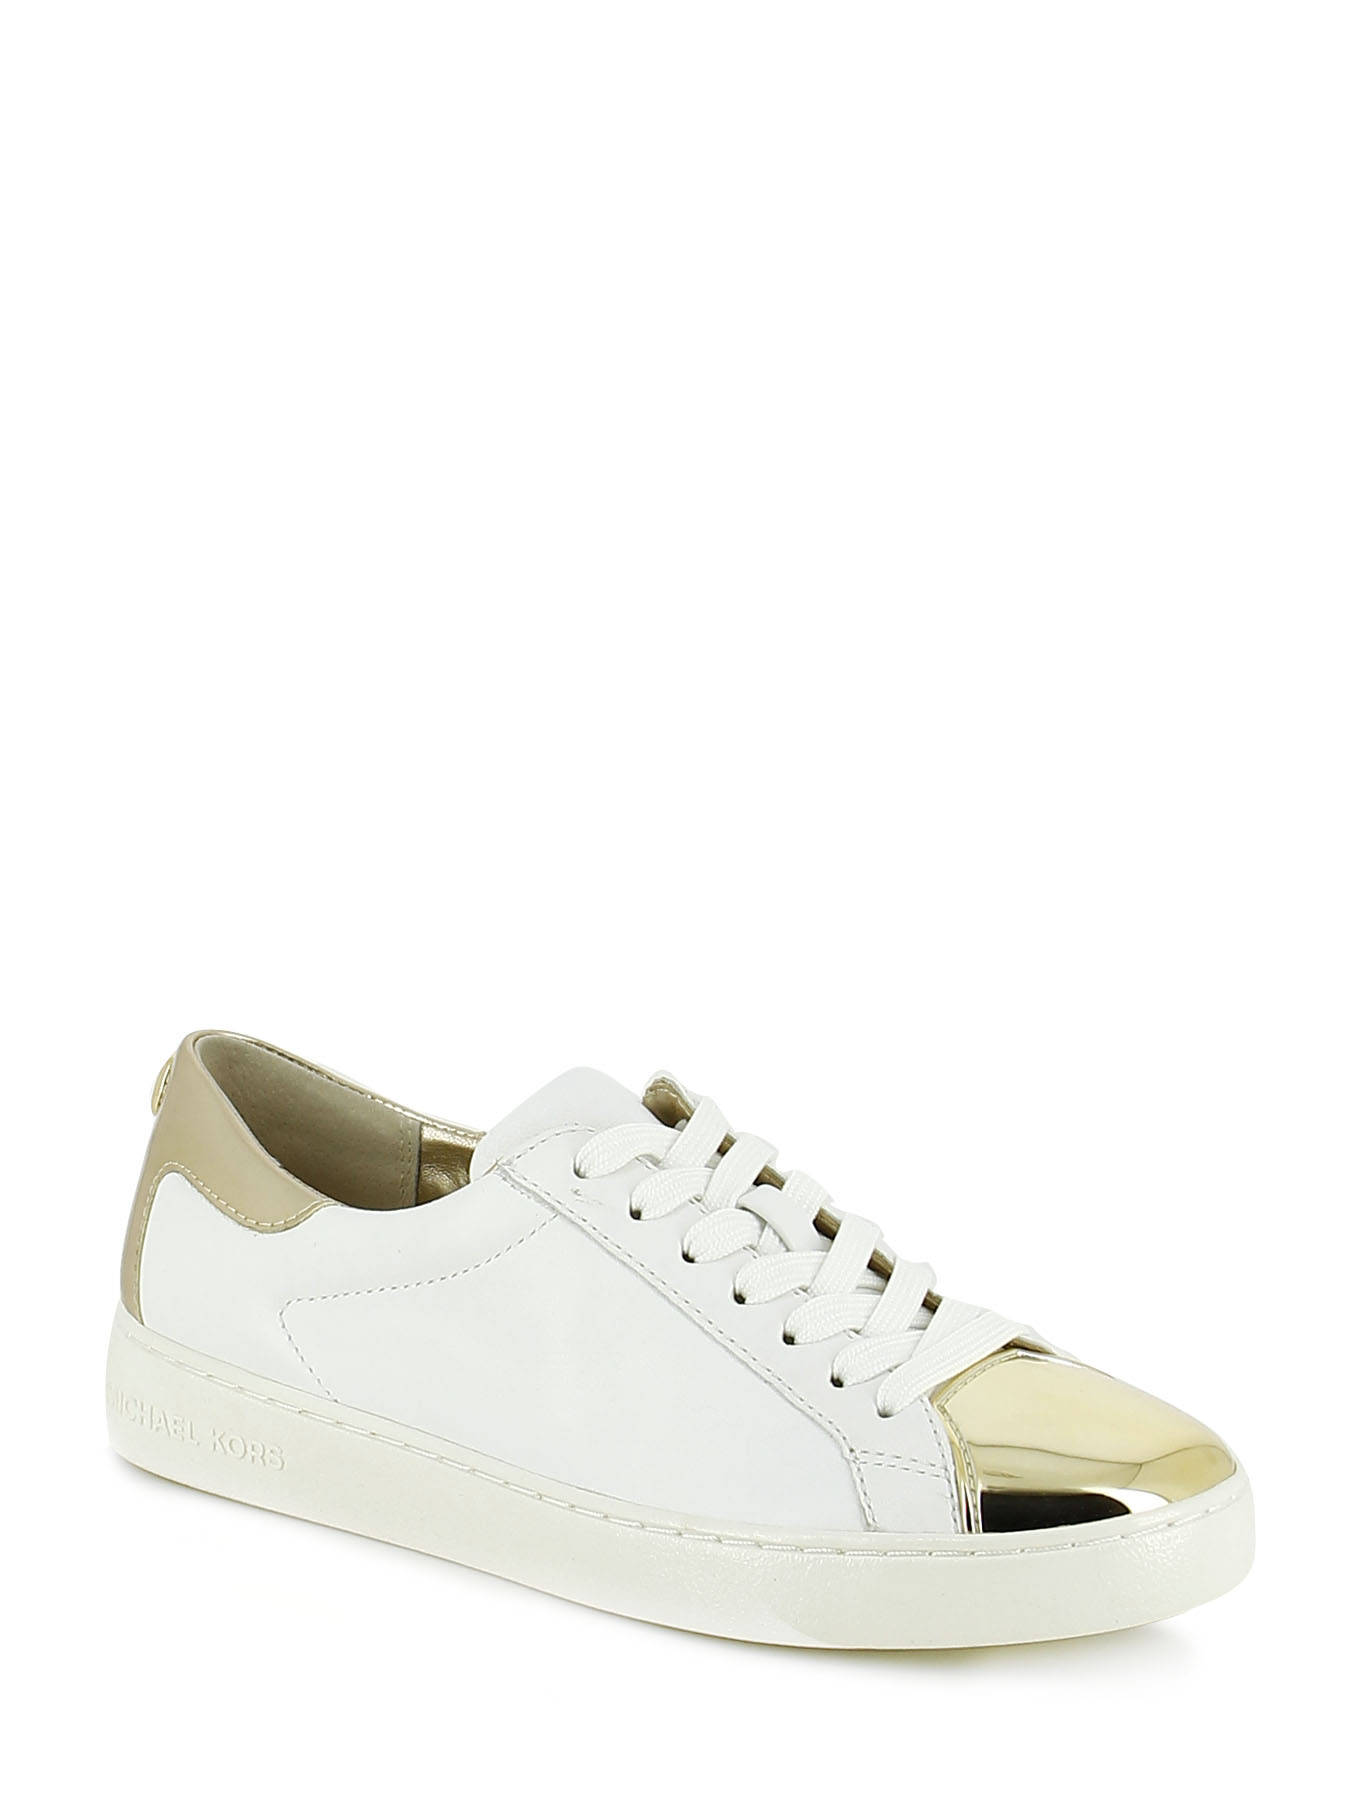 michael kors sneakers baskets mode best prices. Black Bedroom Furniture Sets. Home Design Ideas